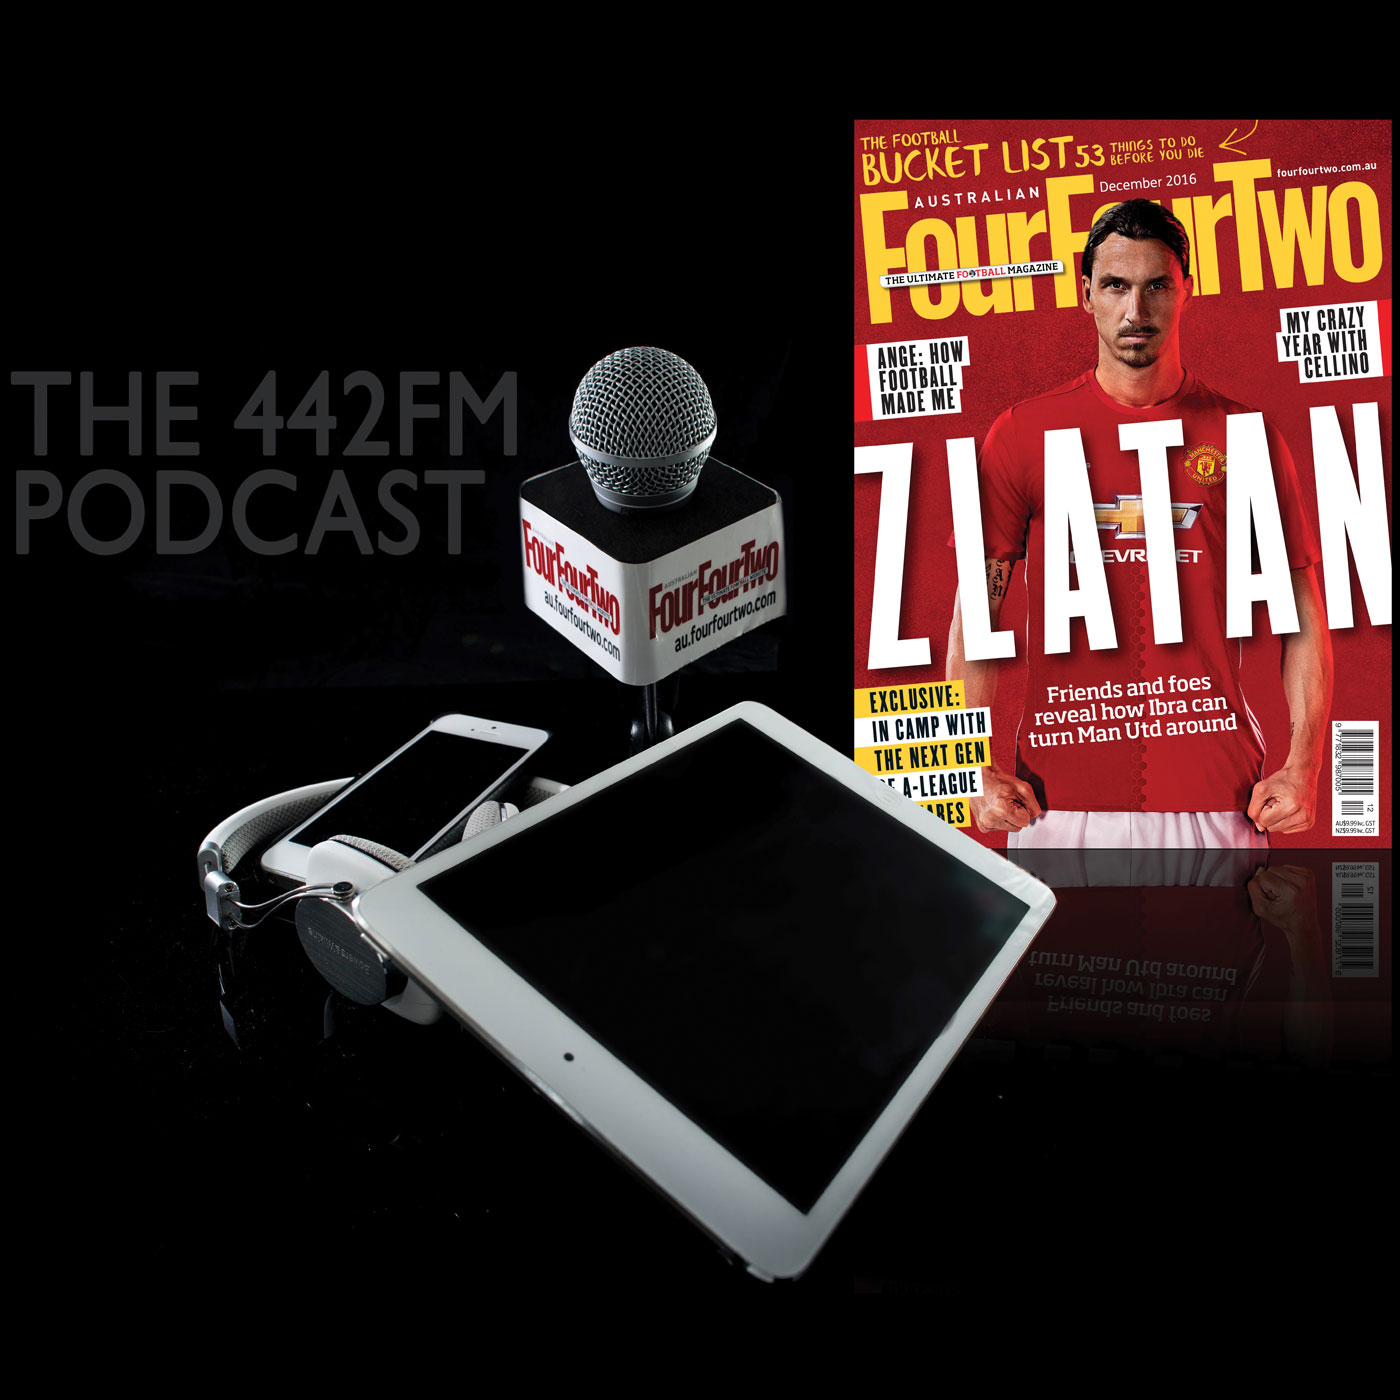 The 442FM Podcast